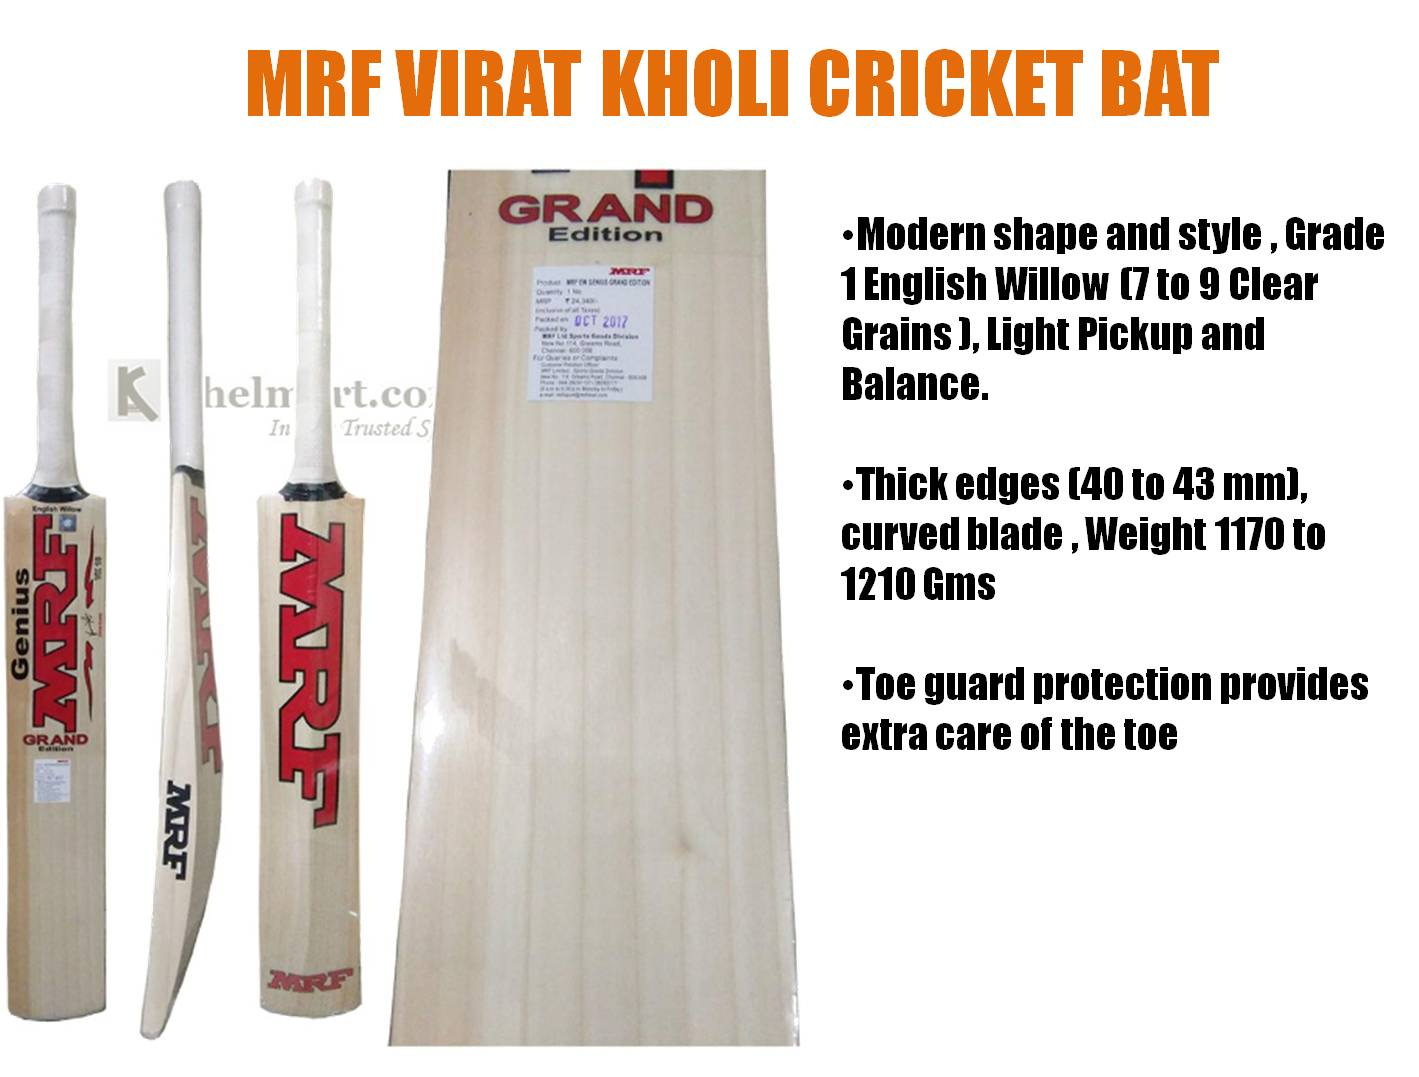 MRF_VIRAT_KHOLI_CRICKET_BAT